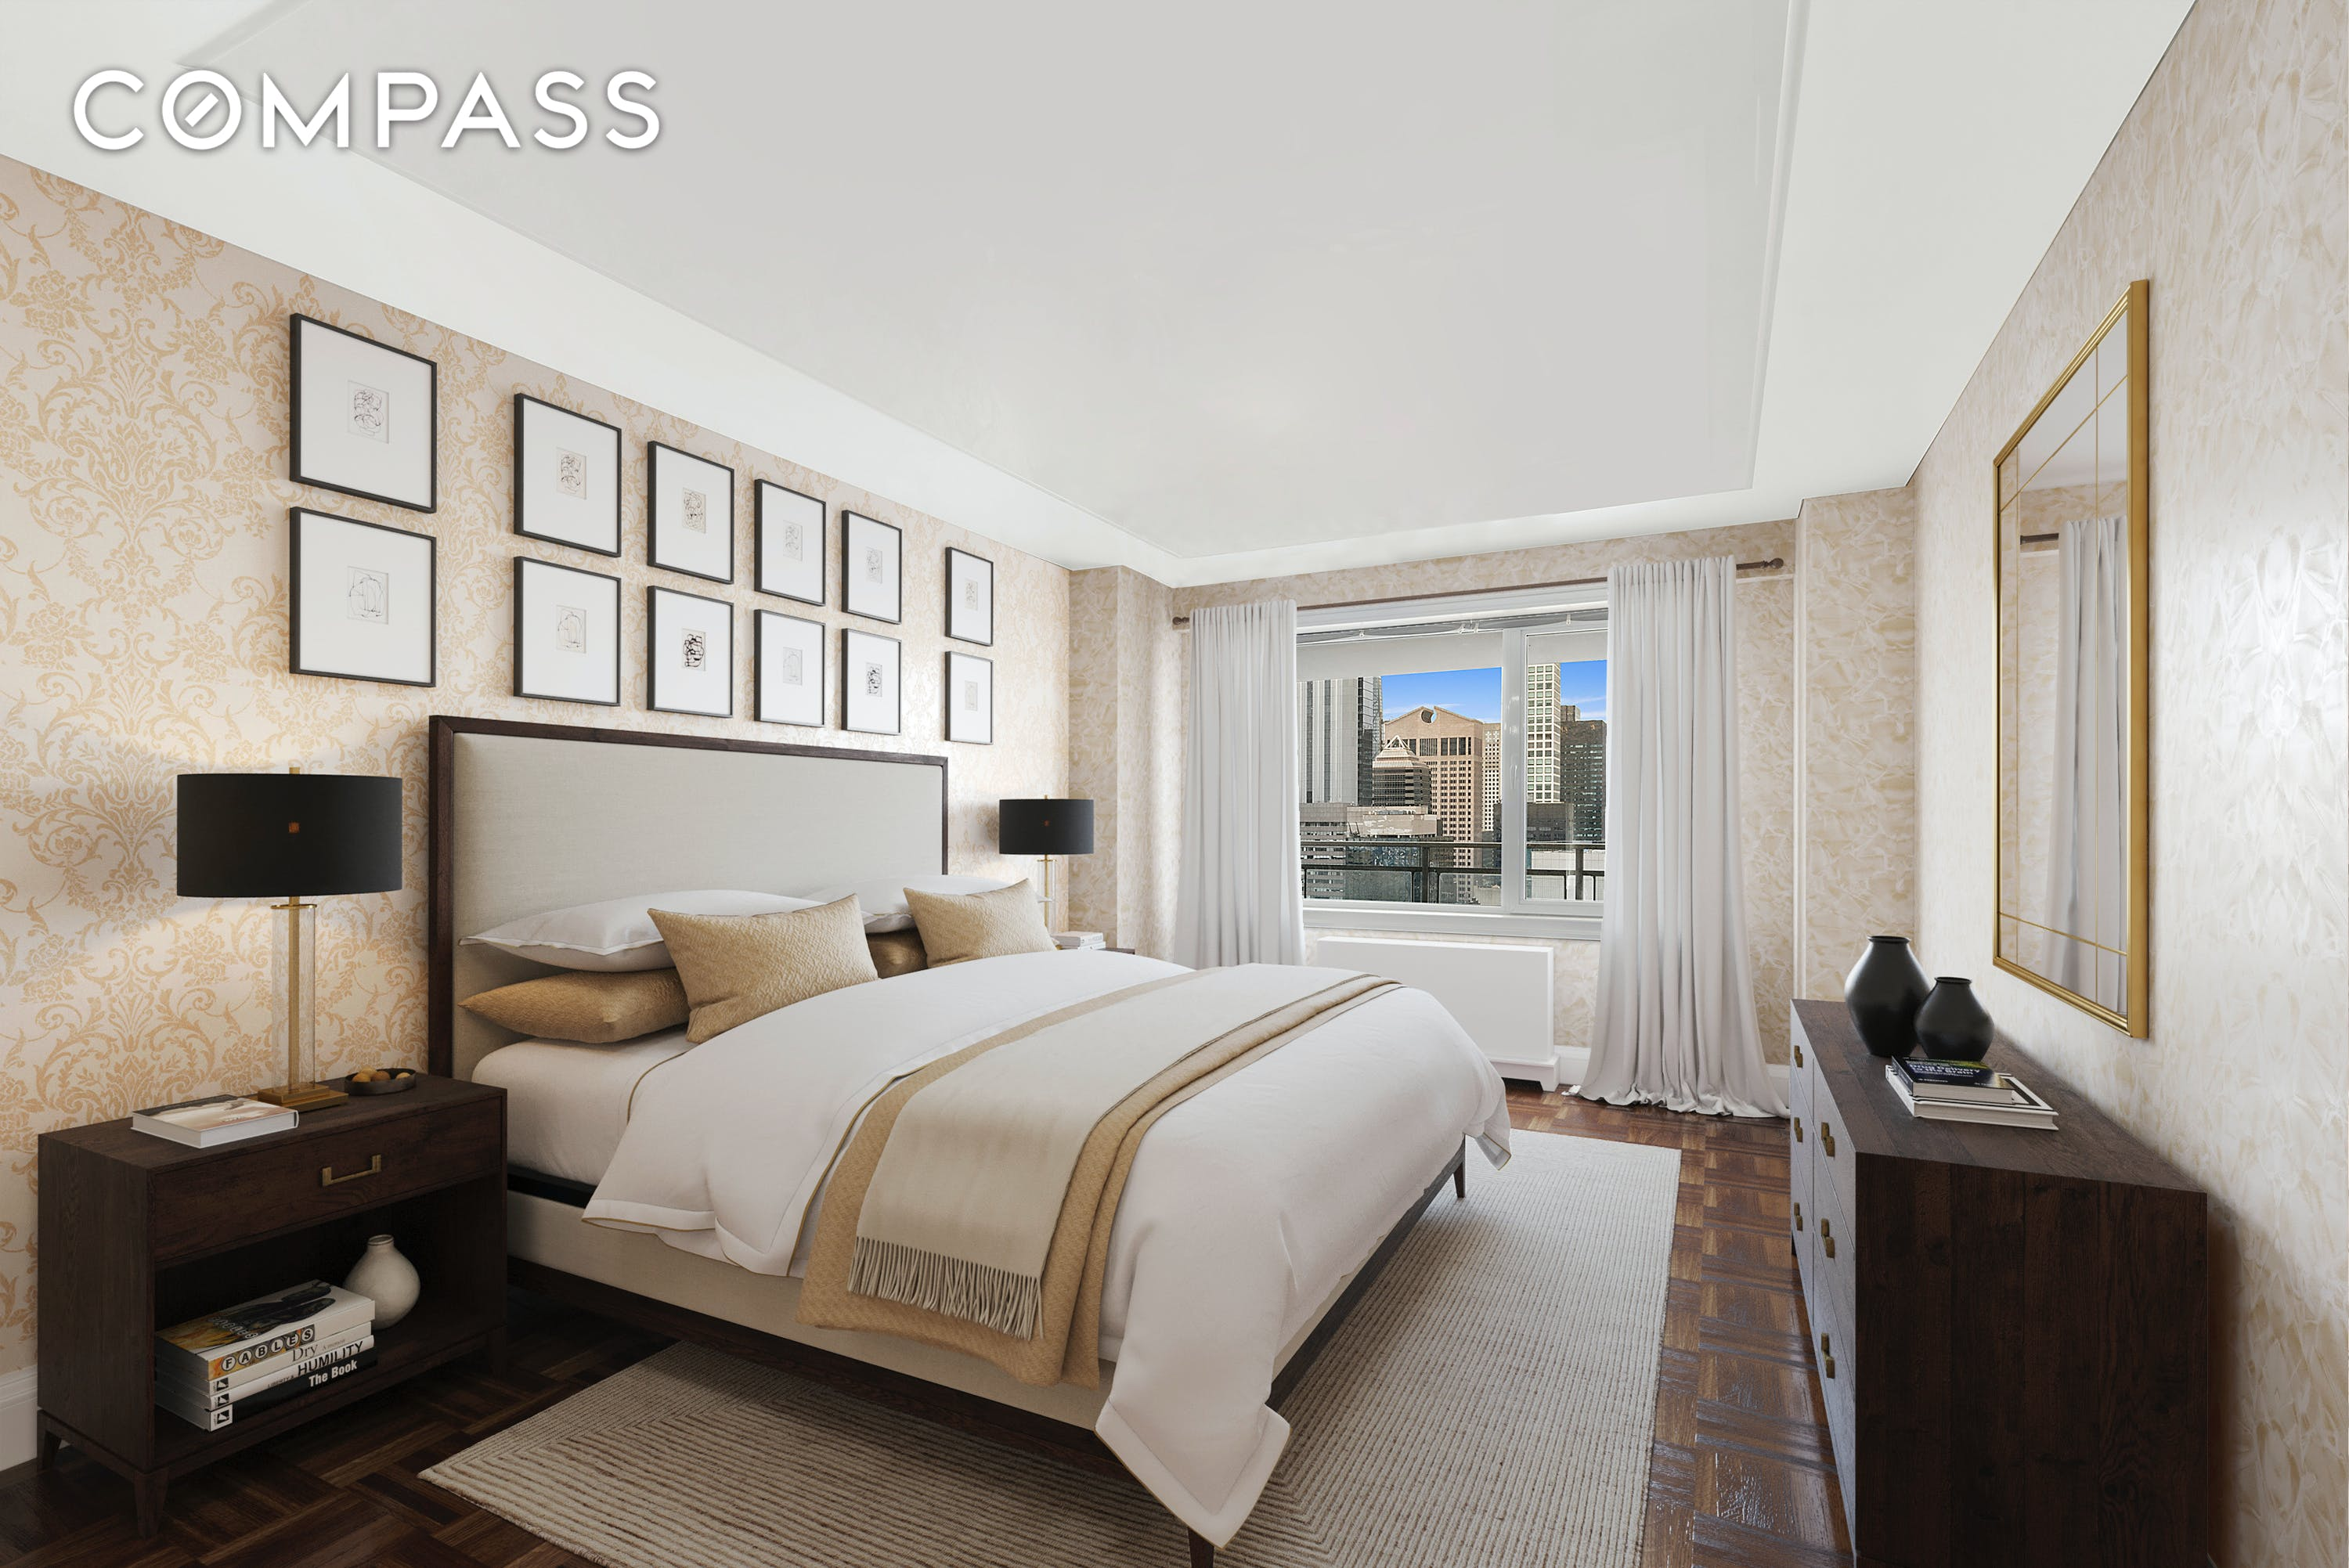 303 East 57th Street Sutton Place New York NY 10022